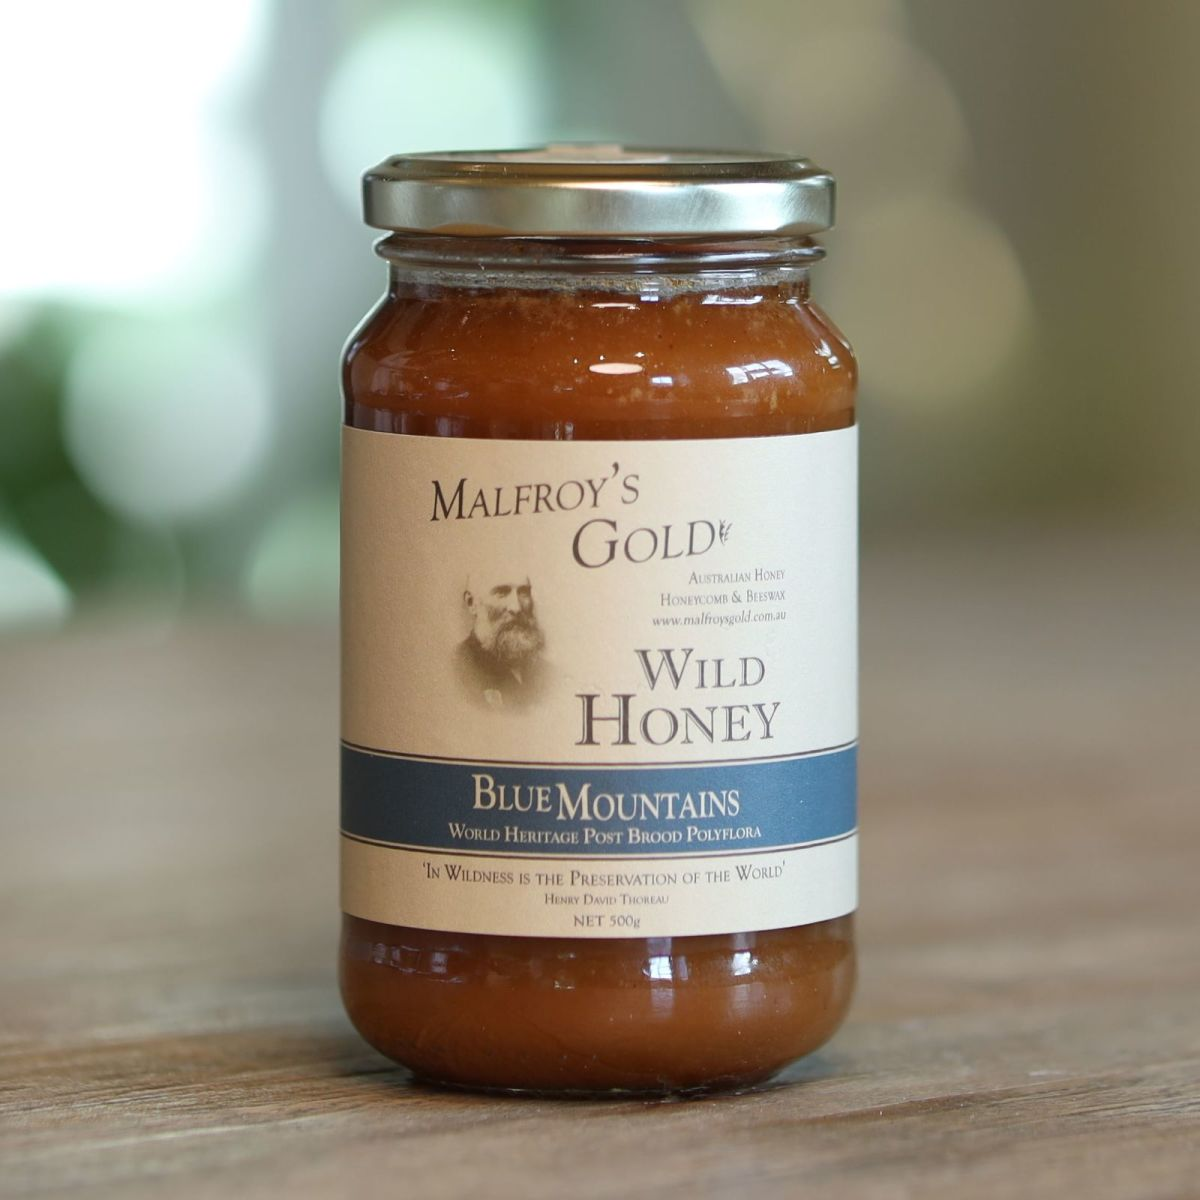 Malfroy's Gold - Blue Mountains World Heritage Post Brood Polyflora Wild Honey